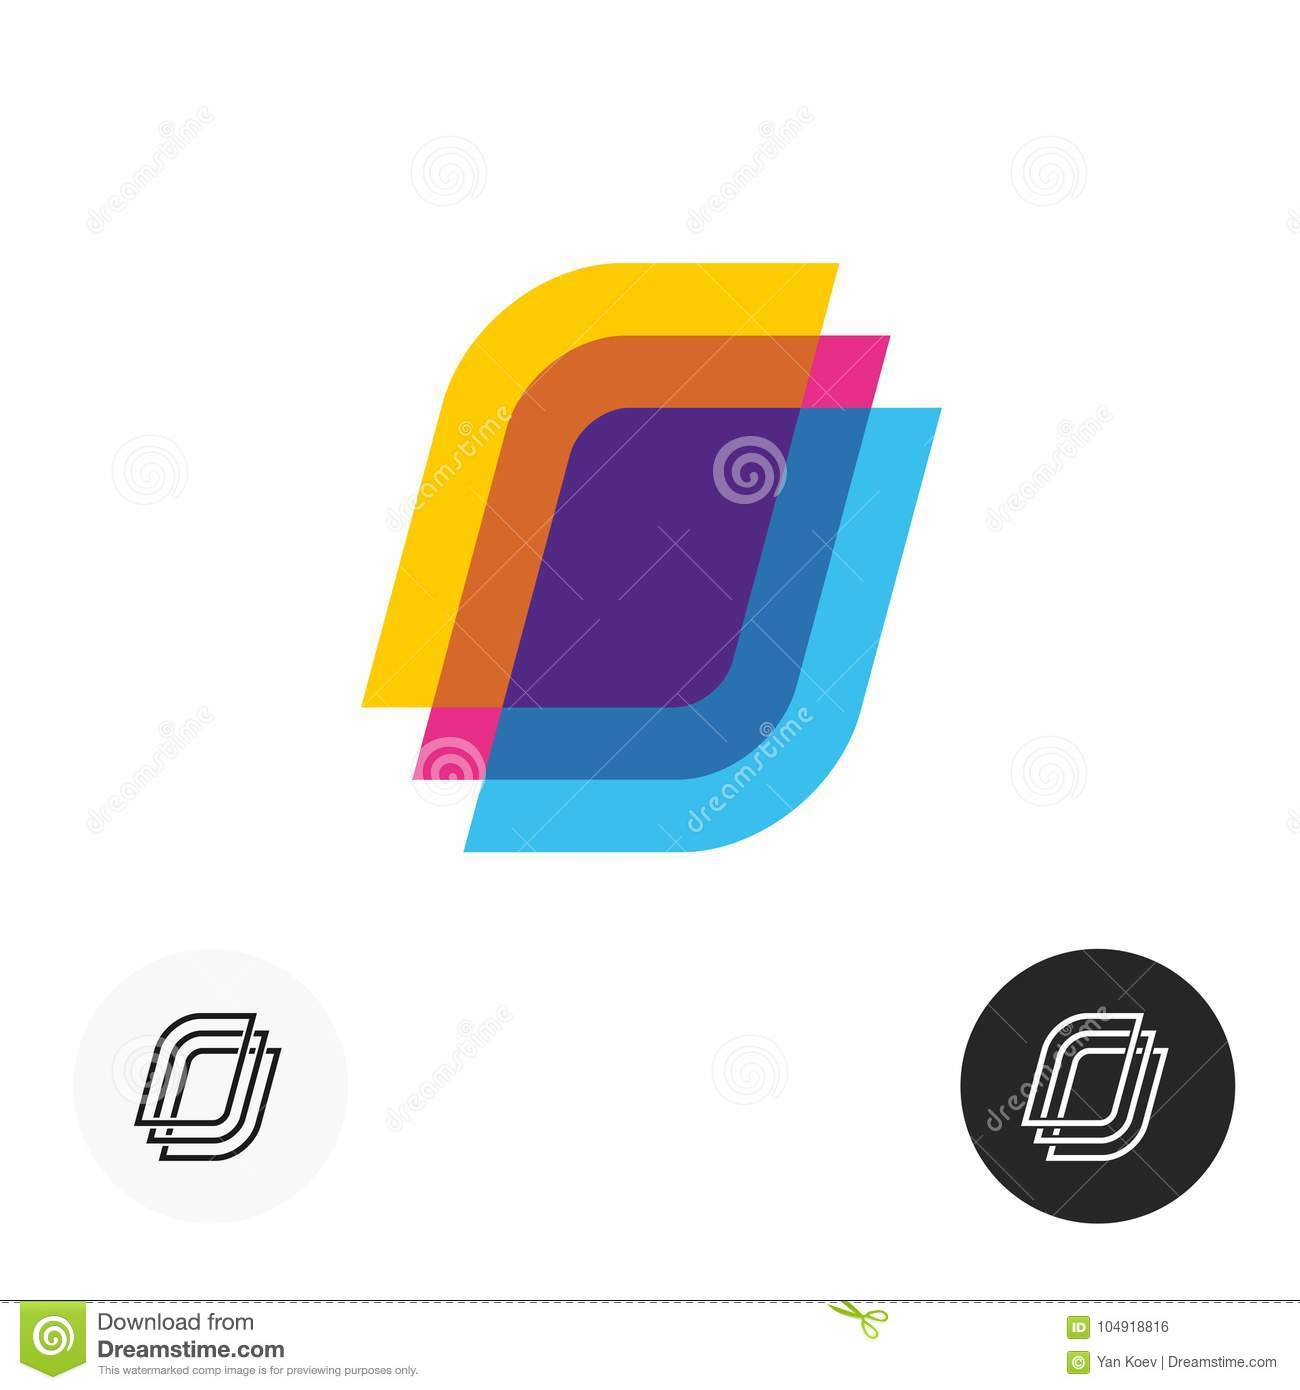 Colorful paper sheets logo. Transparent overlay style symbol.